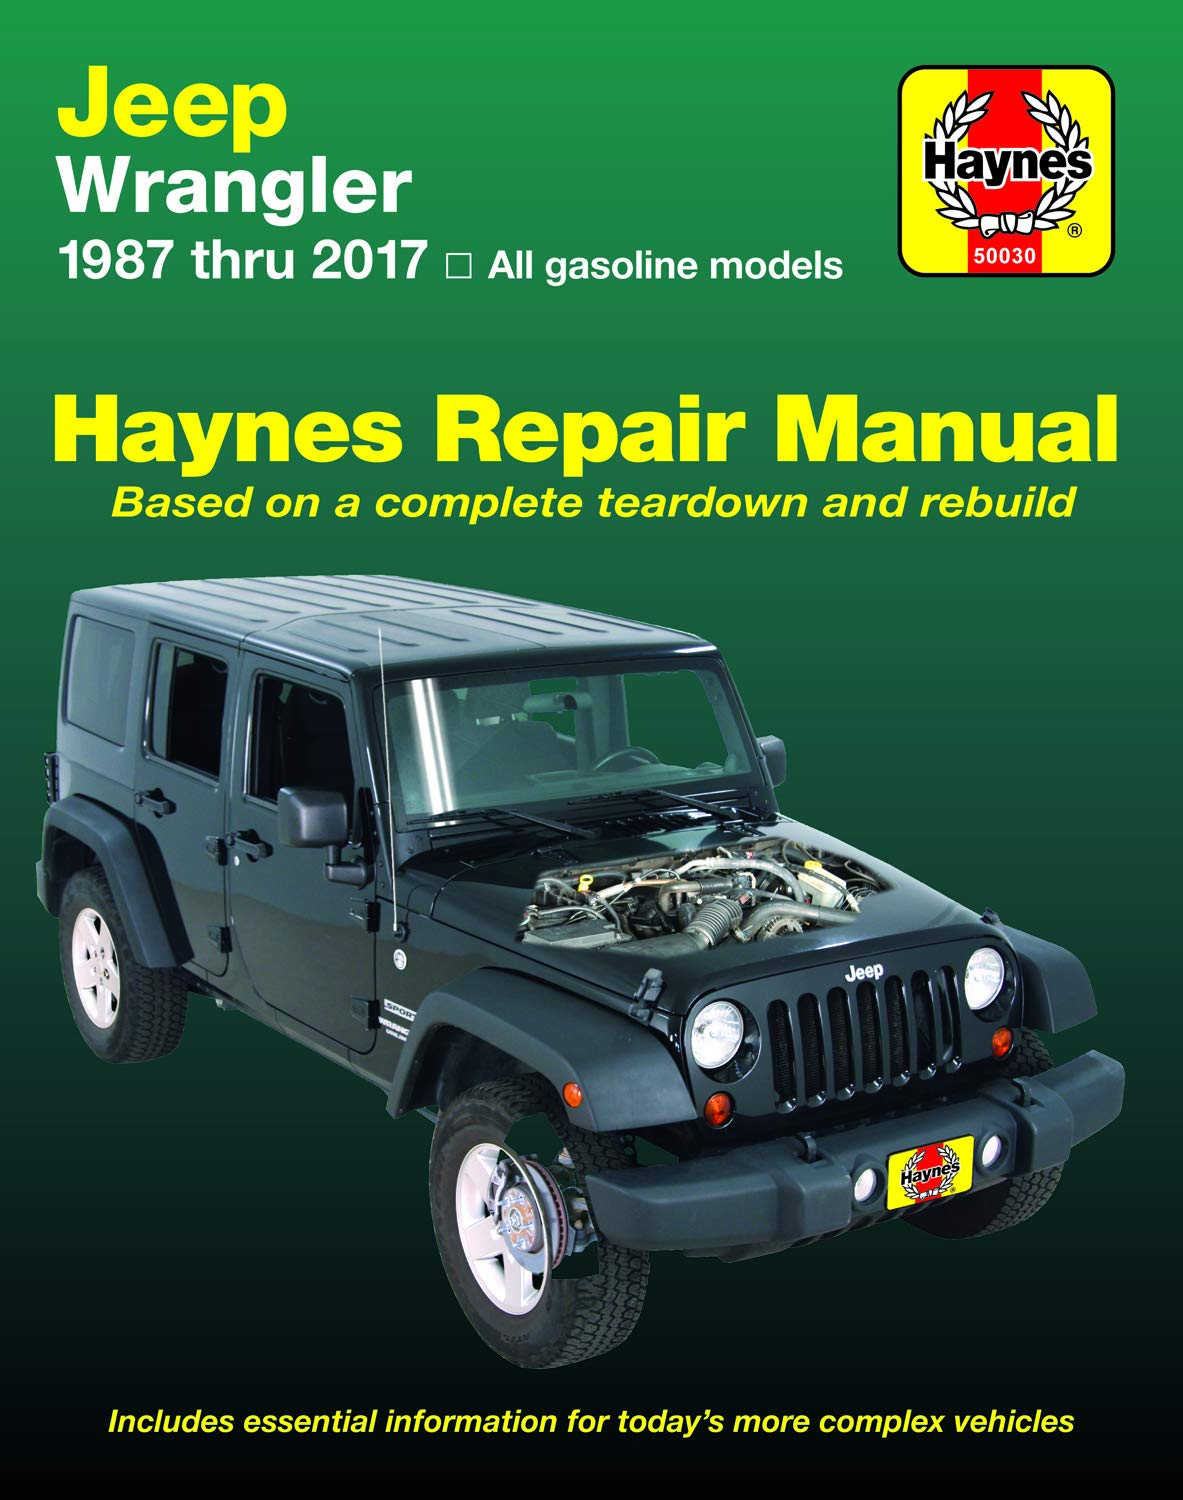 Jeep Wrangler 4-cyl & 6-cyl Gas Engine, 2WD & 4WD Models (87-17) Haynes Repair Manual (Does not include info specific to diesel engine models. ... specific exclusion noted) (Haynes Automotive) by Haynes Manuals N. America, Inc.